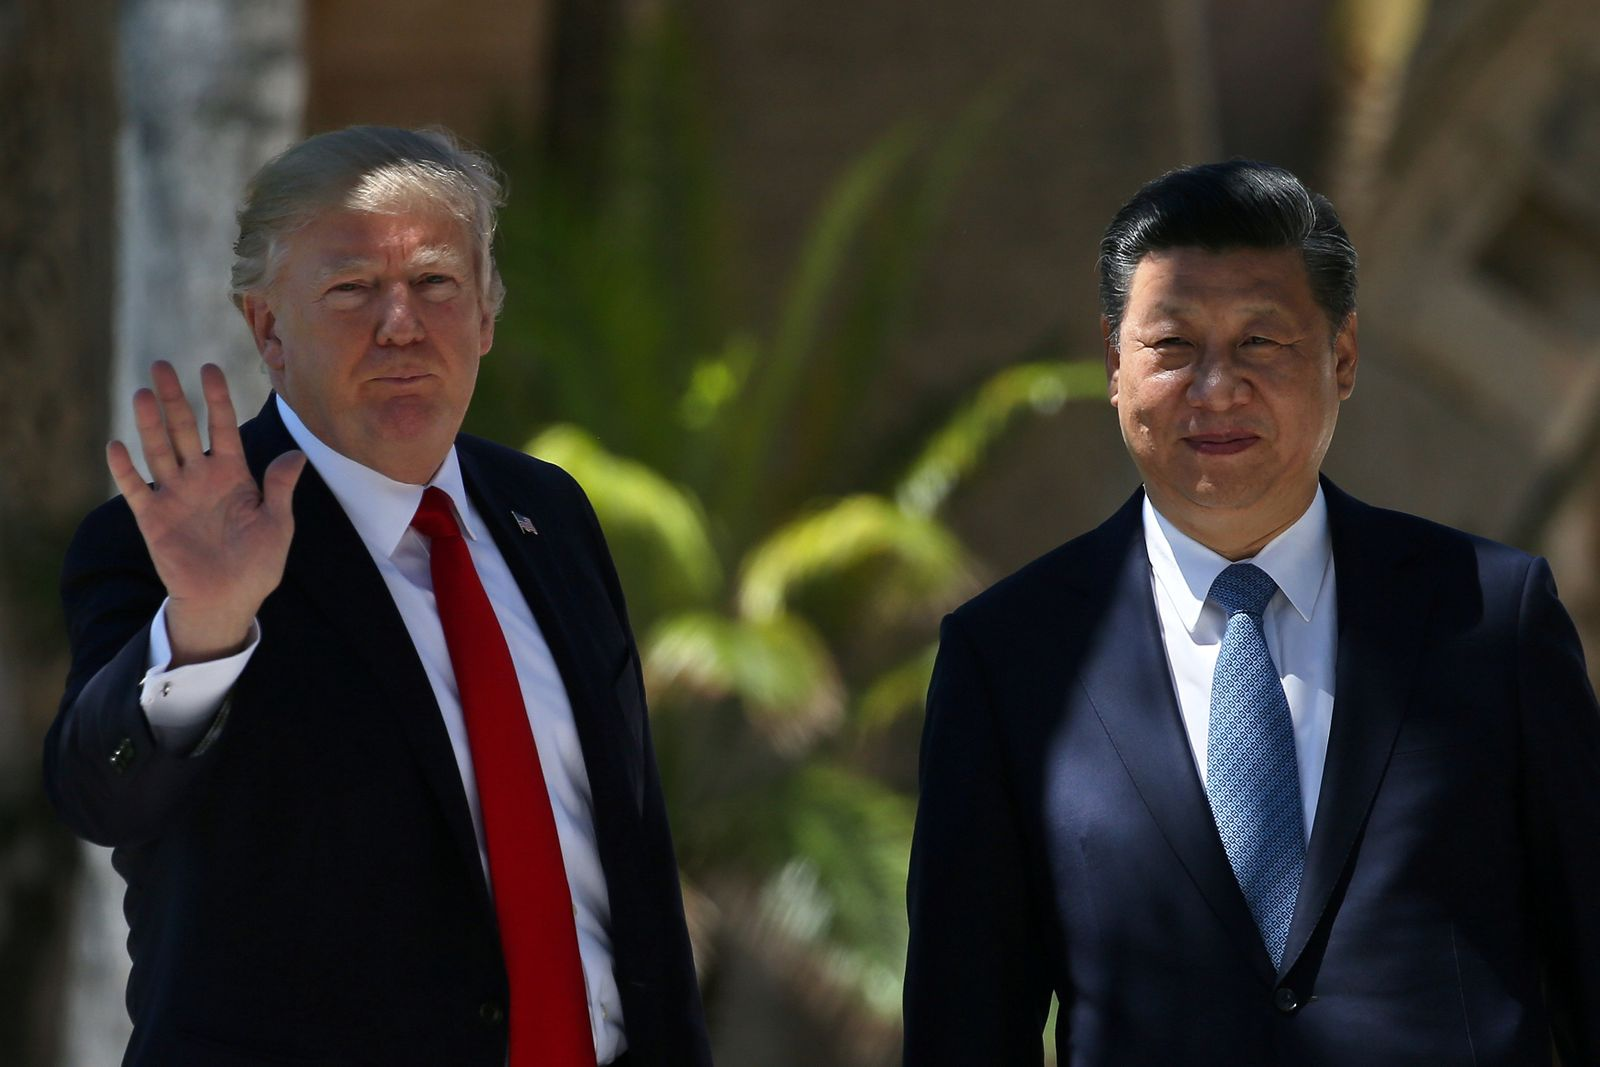 FILE PHOTO: U.S. President Trump waves as he and China's President Xi walk along the front patio of the Mar-a-Lago estate after a bilateral meeting in Palm Beach